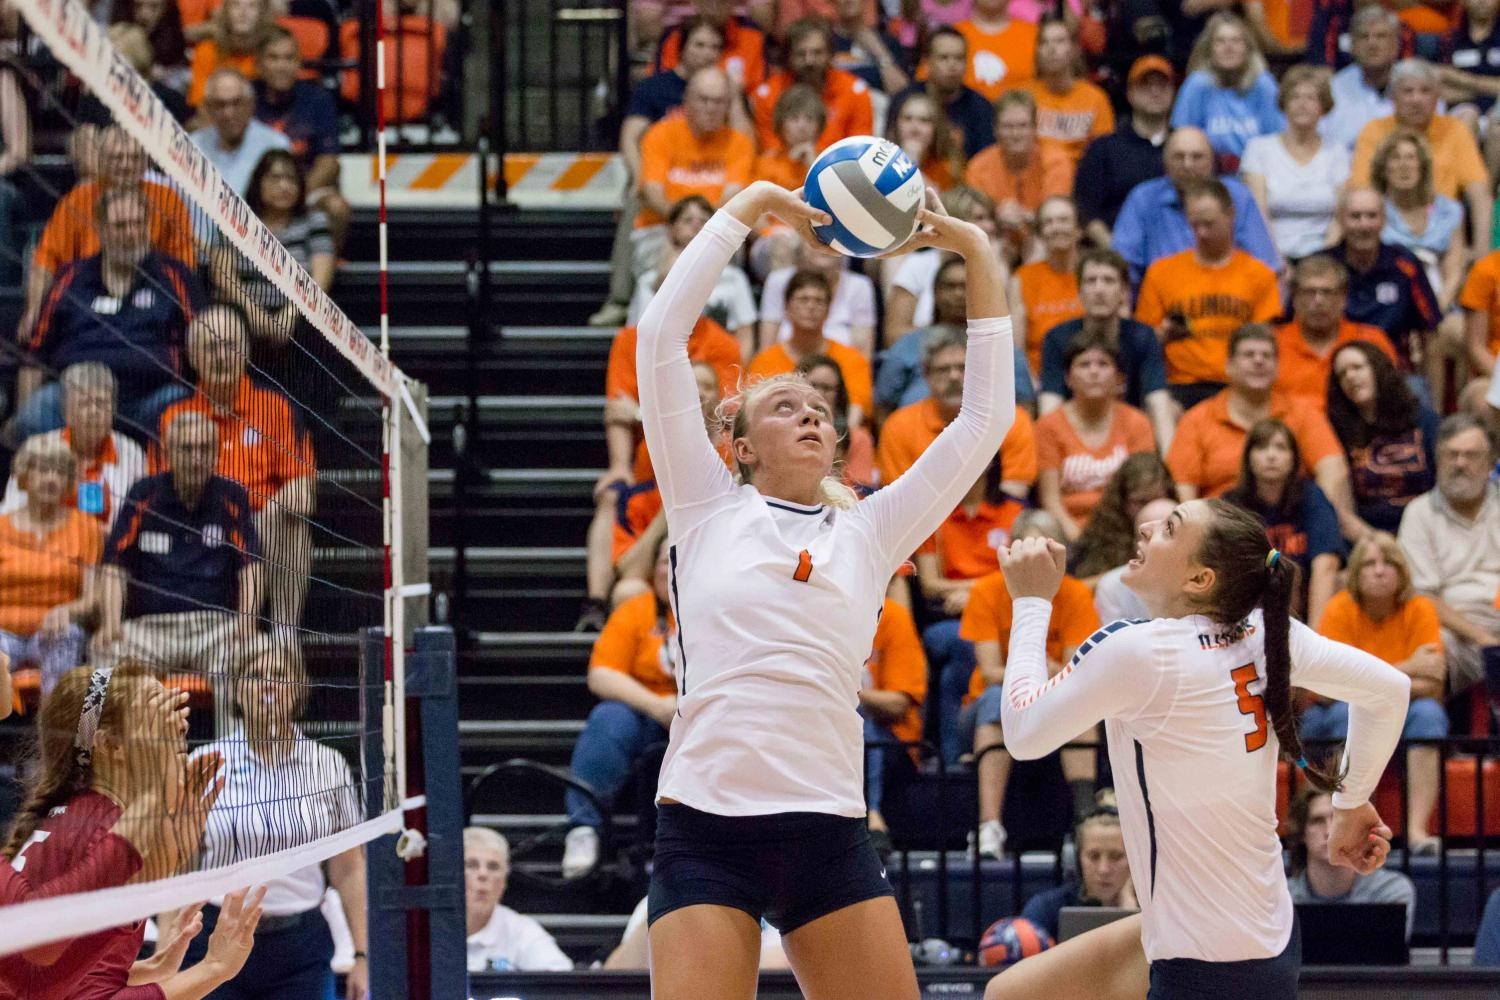 Jordyn+Poulter+sets+the+ball+to+Ali+Bastianelli+during+the+match+against+Arkansas+at+Huff+Hall+on+Aug.+26.+The+Illini+won+3-0.+This+season%2C+in+the+Cardinal+Classic%2C+Bastianelli+had+eight+blocks+against+Kent+State.+The+team%27s+record+is+now+6-0.